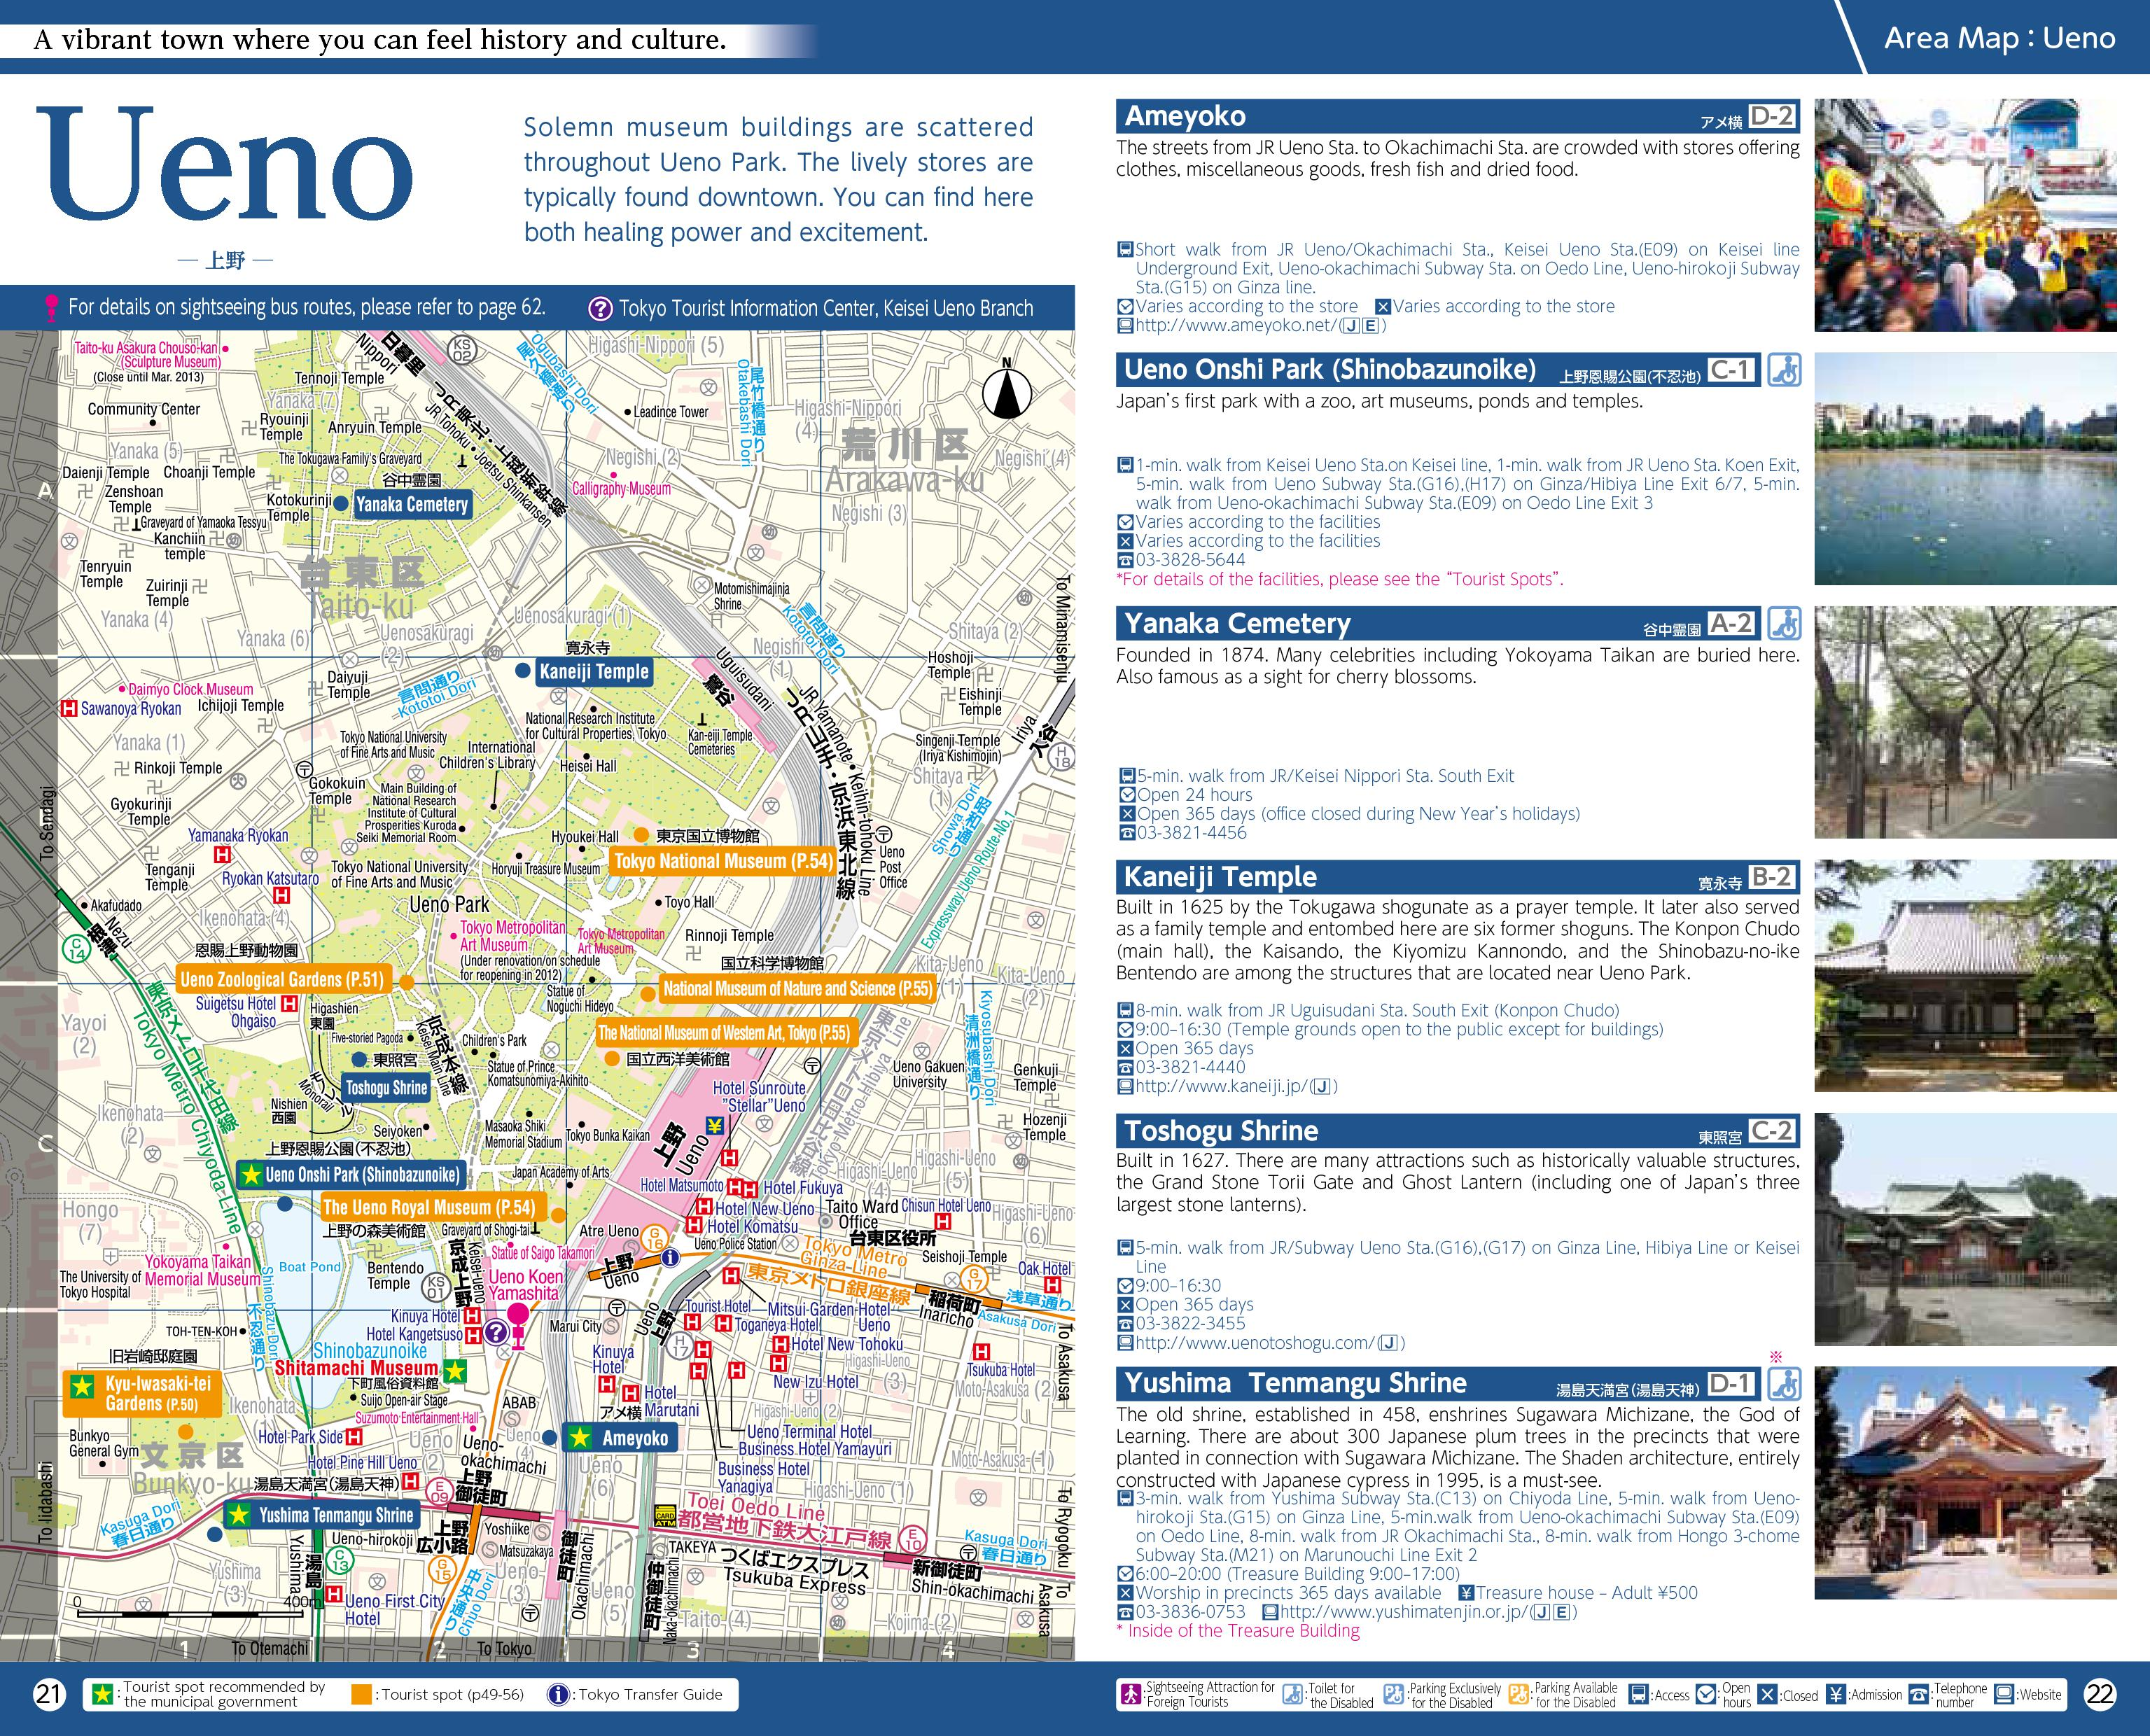 map las vegas with Ueno Map on Directory further San Diego News  1823660 besides Bonnie Springs Ranch Las Vegas Day Trip also Las Vegas Nevada likewise Ueno Map.